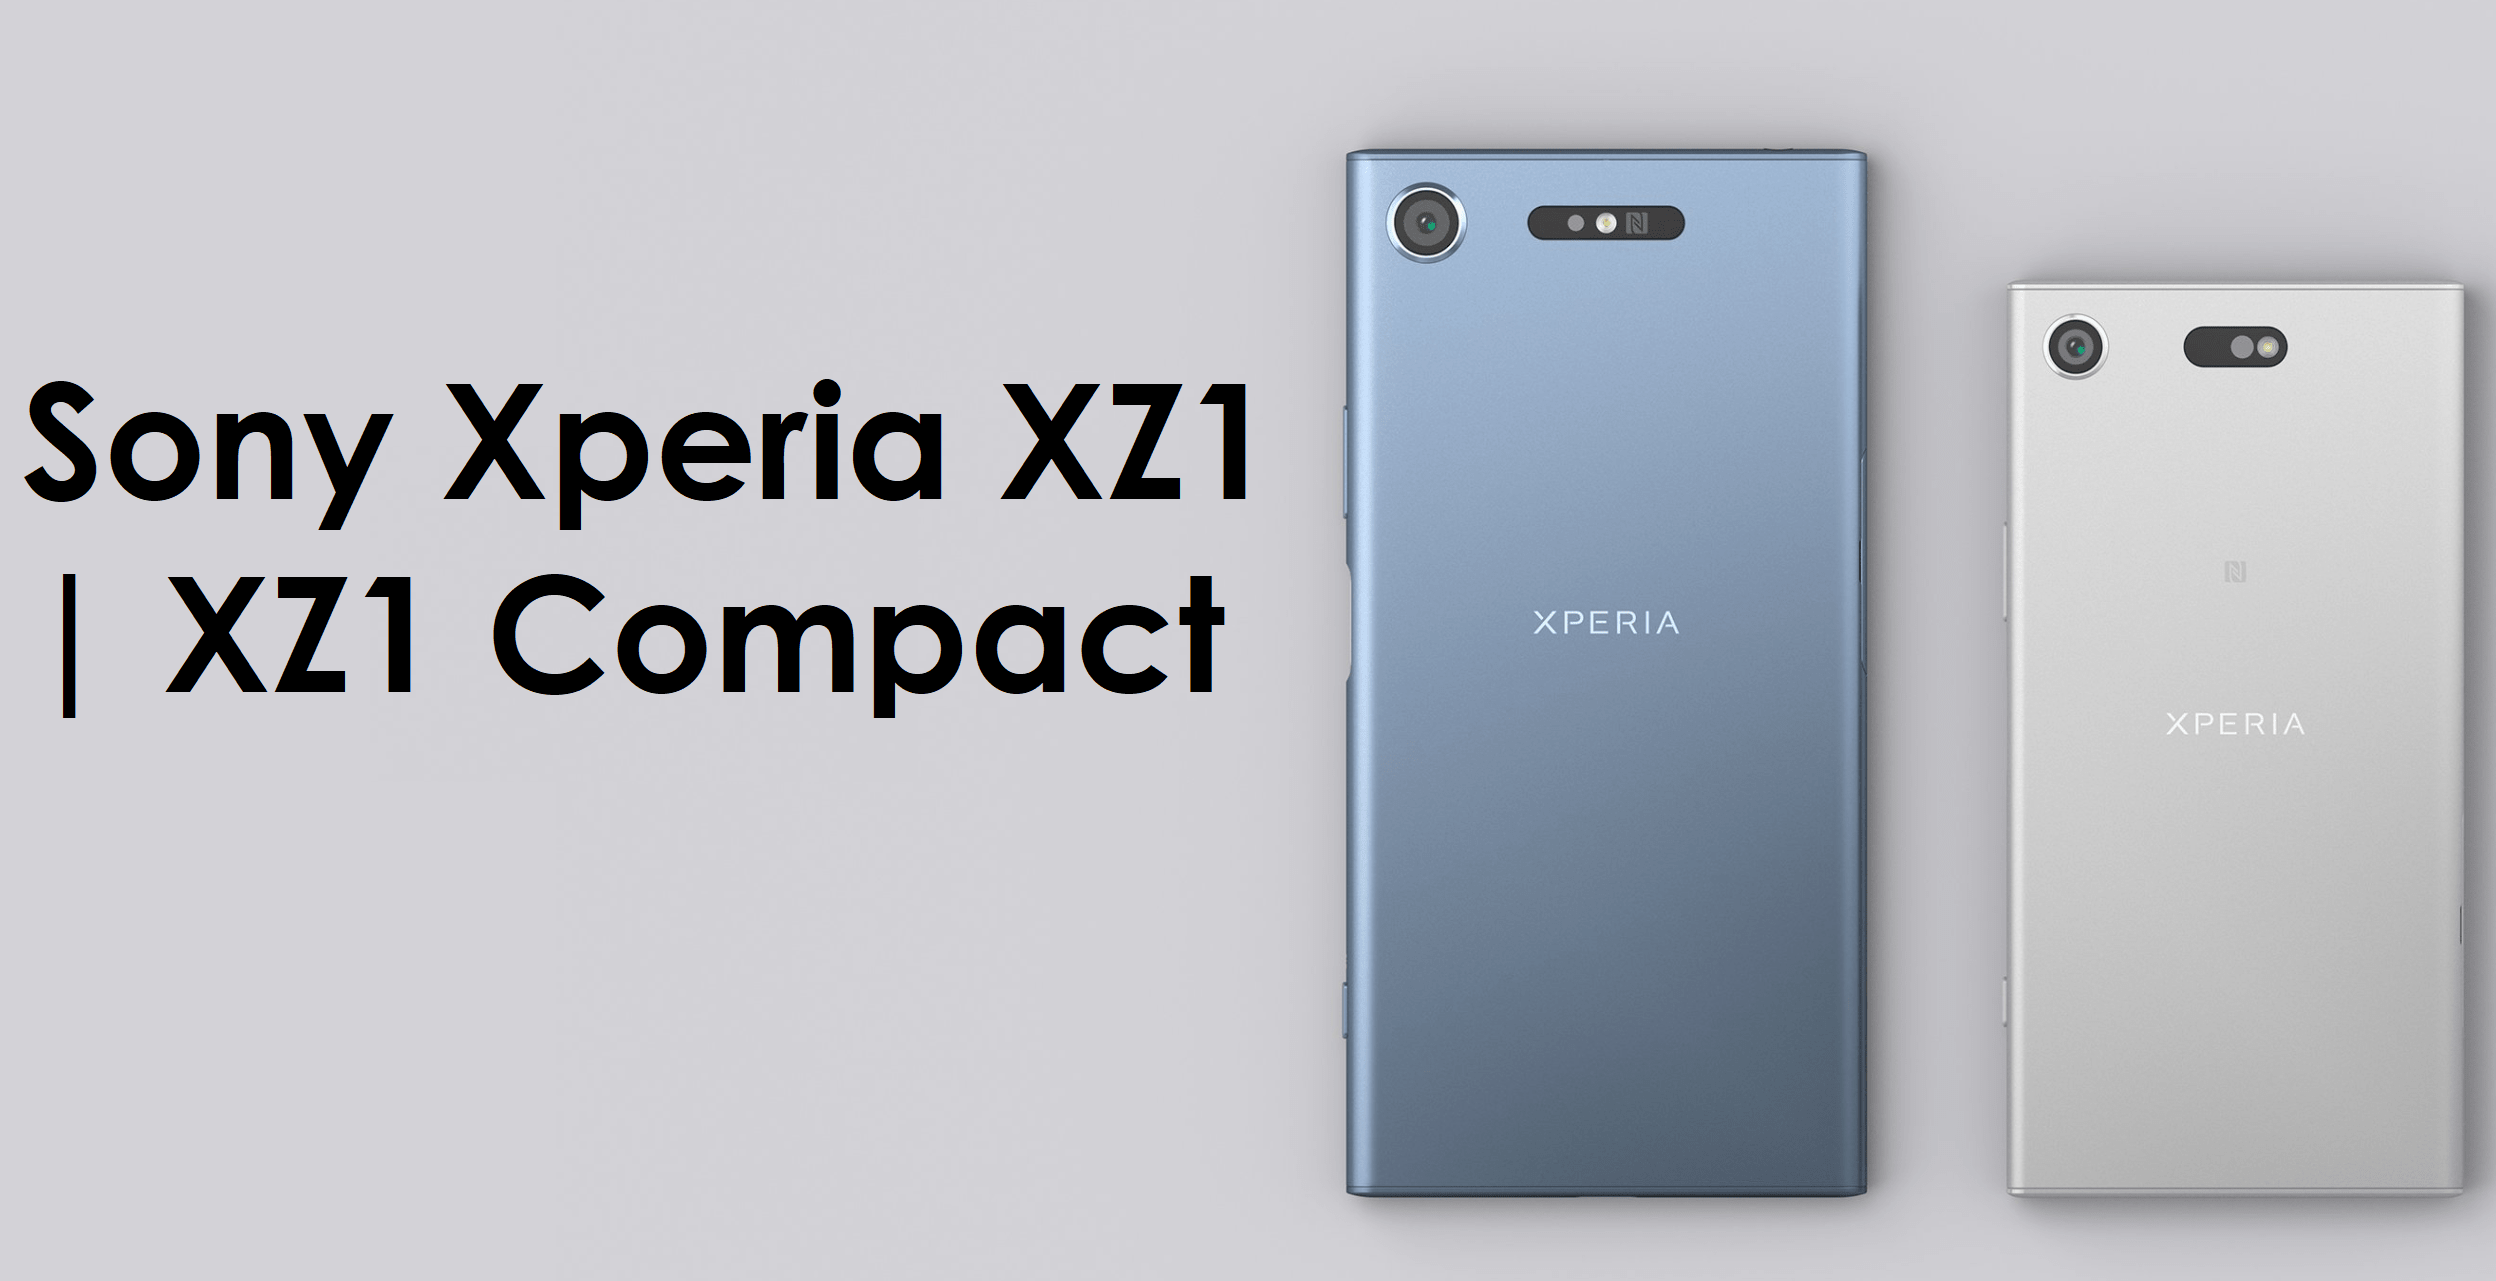 sony xperia xz1 xz1 compact price specifications features. Black Bedroom Furniture Sets. Home Design Ideas